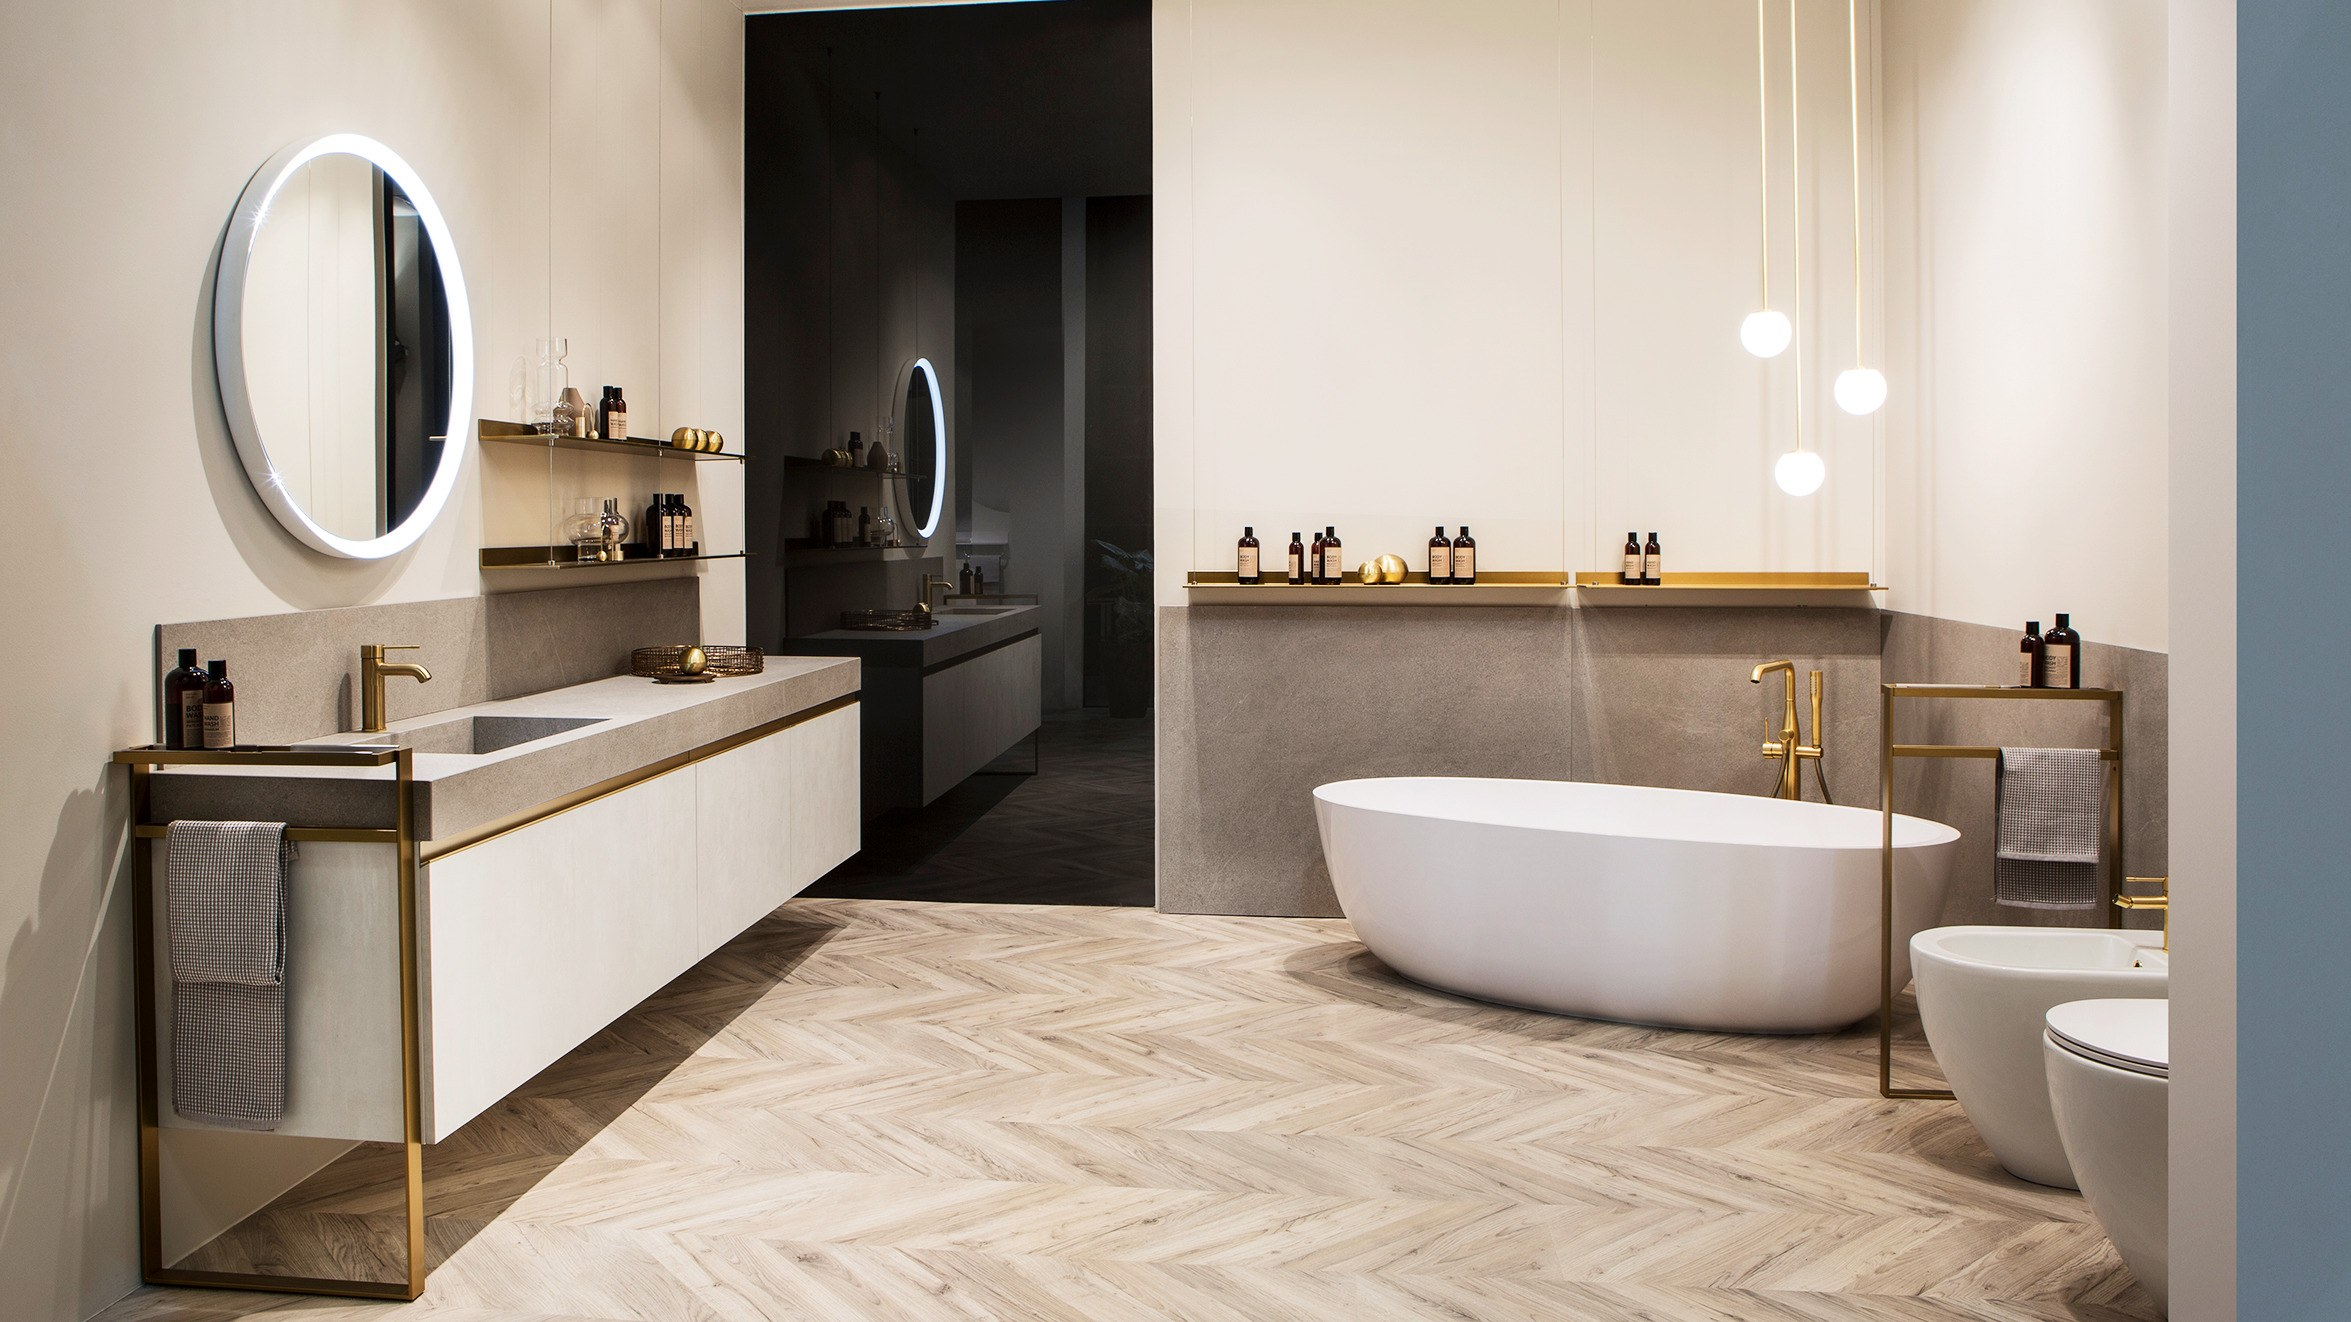 Bath Design Awards, Architectural Digest, Maison Valentina, Bathroom, interior design architectural digest Best of 2019: Great Bath Design Awards by Architectural Digest Total Transformation Scavioli